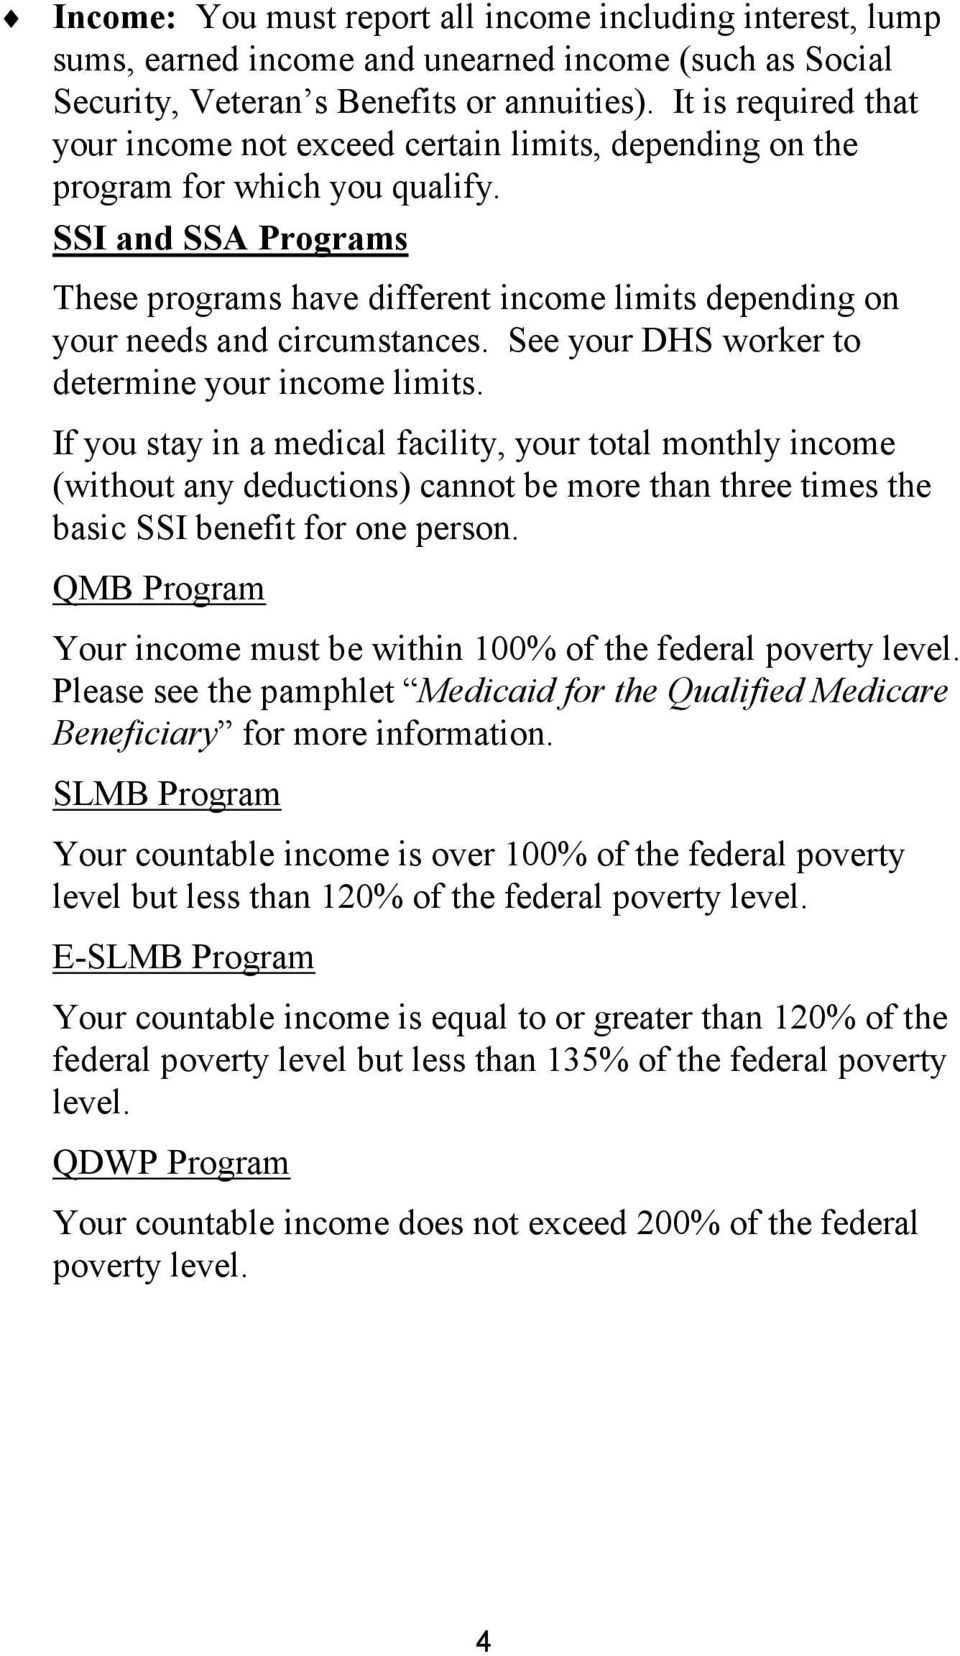 SSI and SSA Programs These programs have different income limits depending on your needs and circumstances. See your DHS worker to determine your income limits.